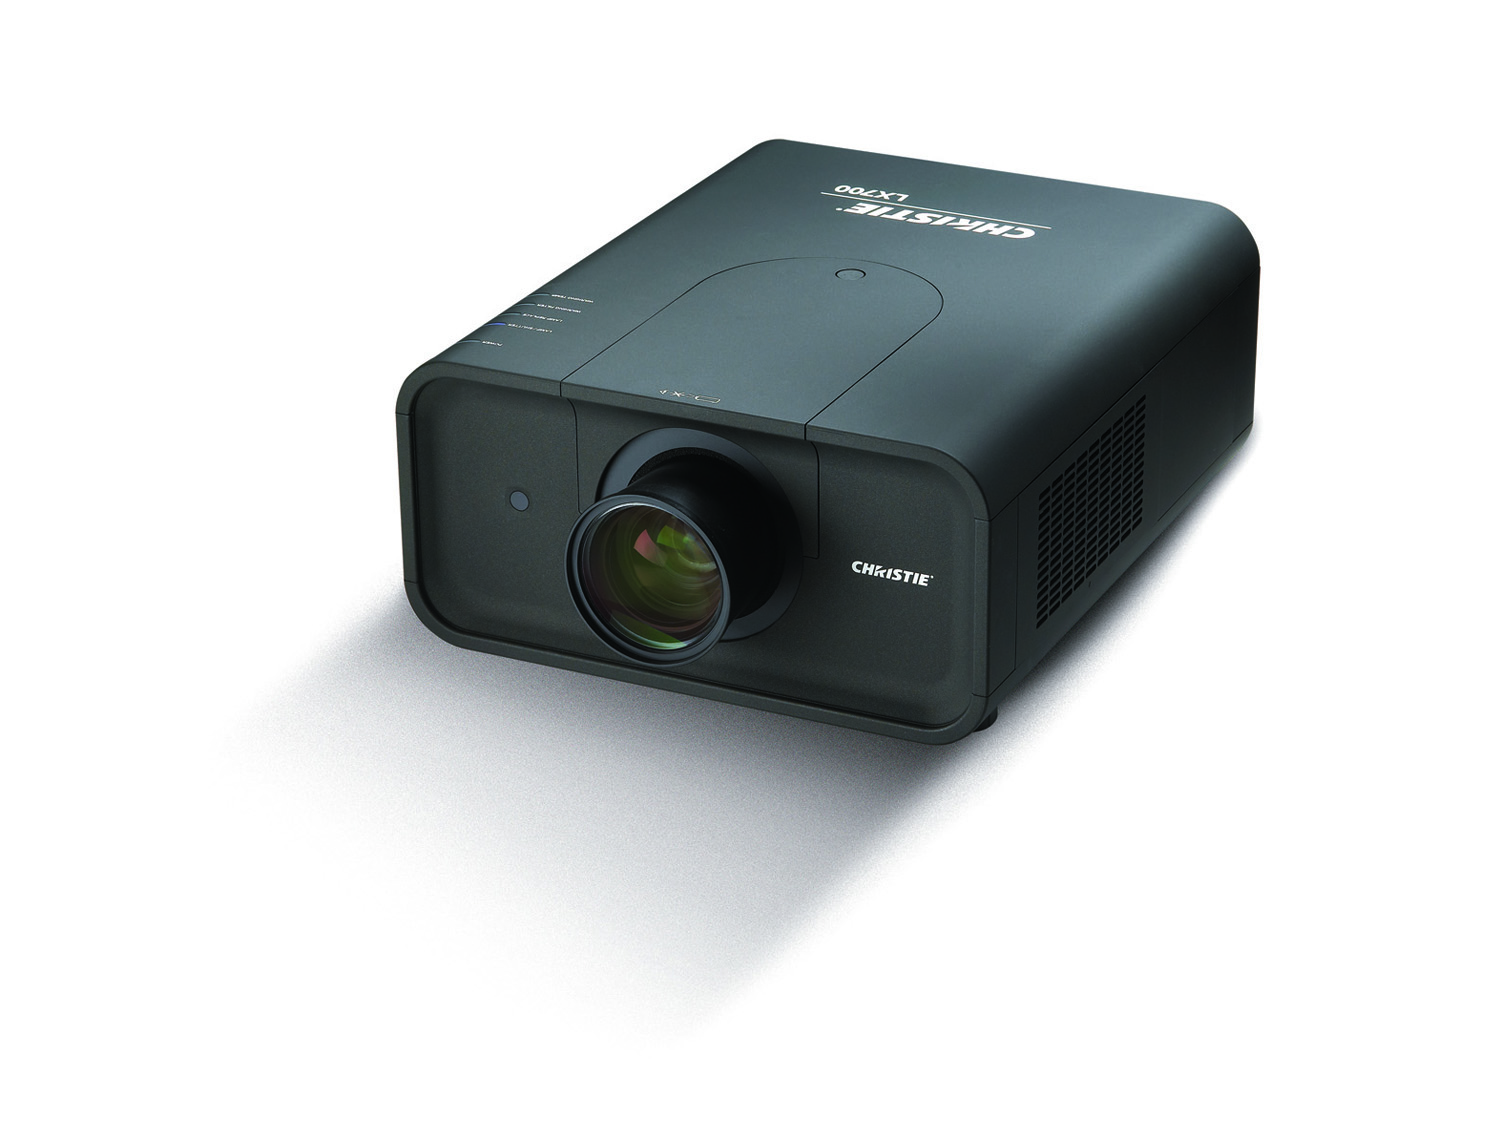 /globalassets/.catalog/products/images/christie-lx700/gallery/christie-lx700-lcd-digital-projector-highright_pr.jpg